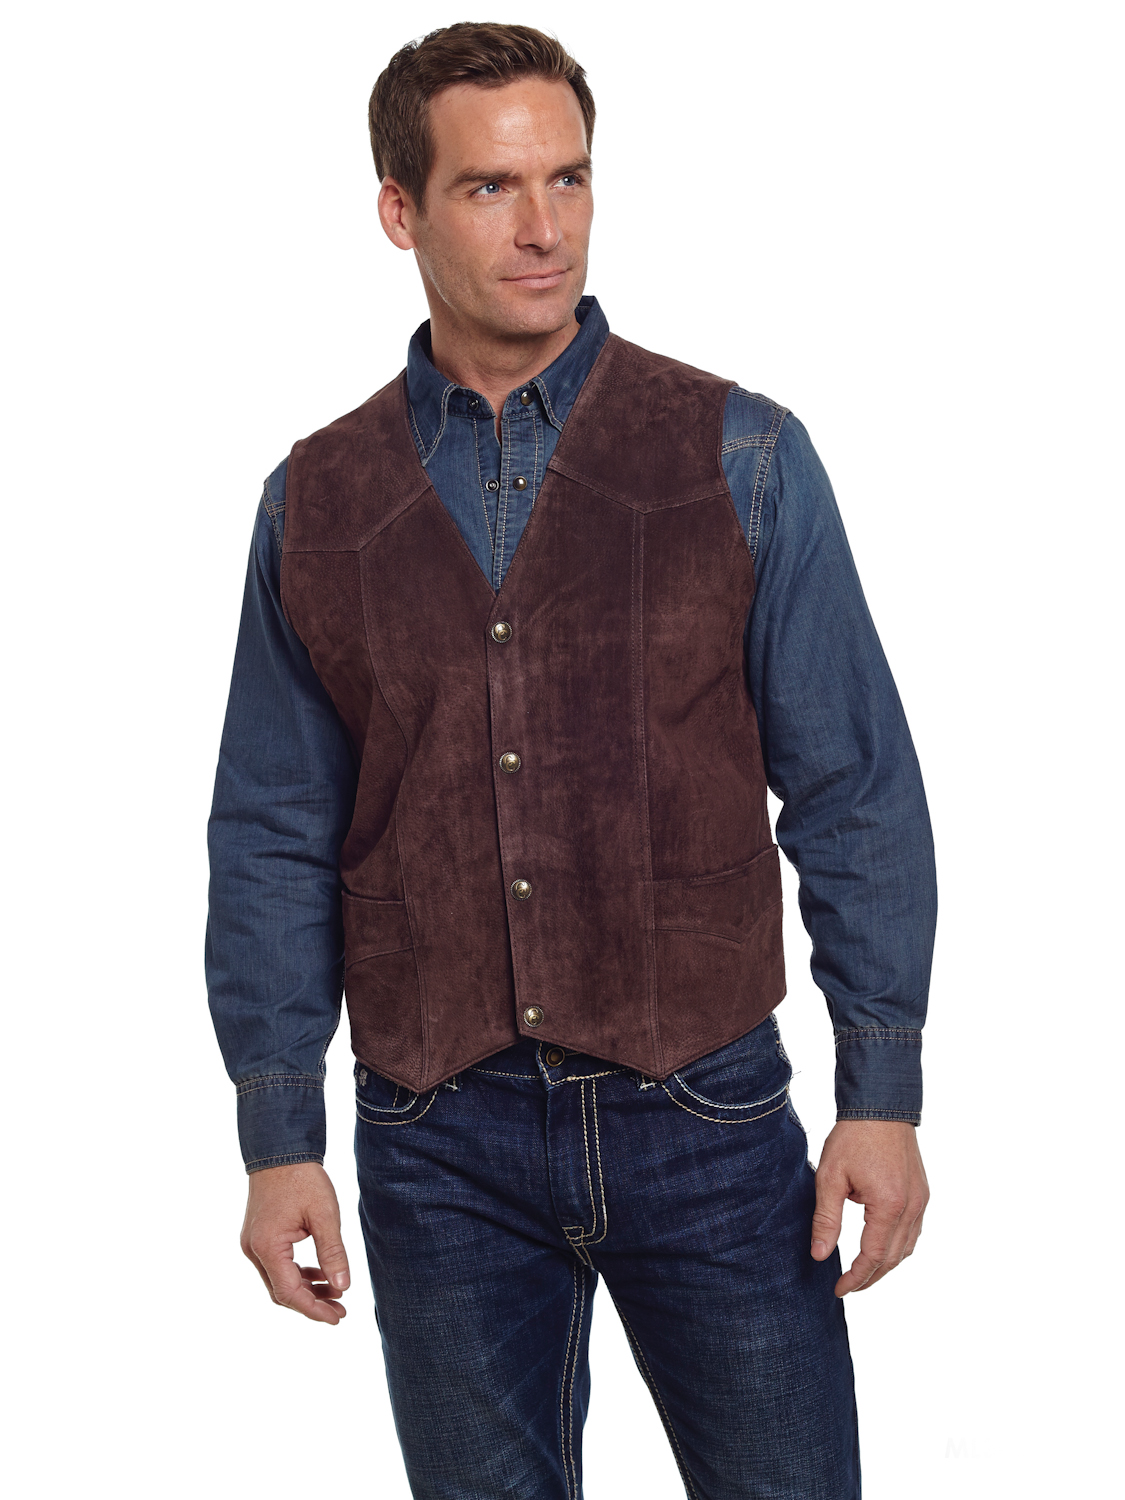 Find great deals on eBay for mens suede vest. Shop with confidence.